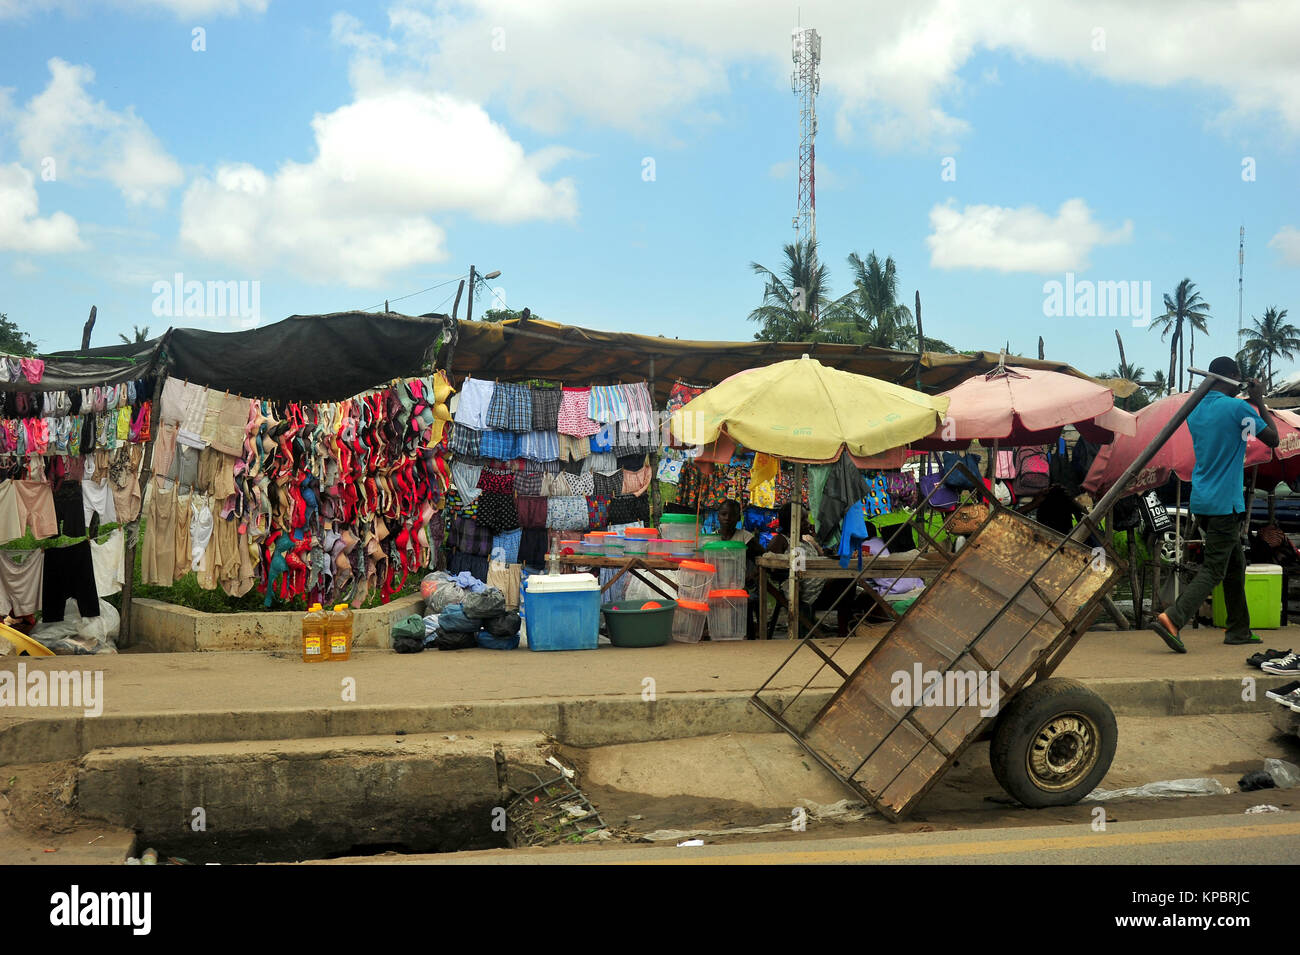 A row of street stalls and shops in Maputo, Mozambique. Stock Photo